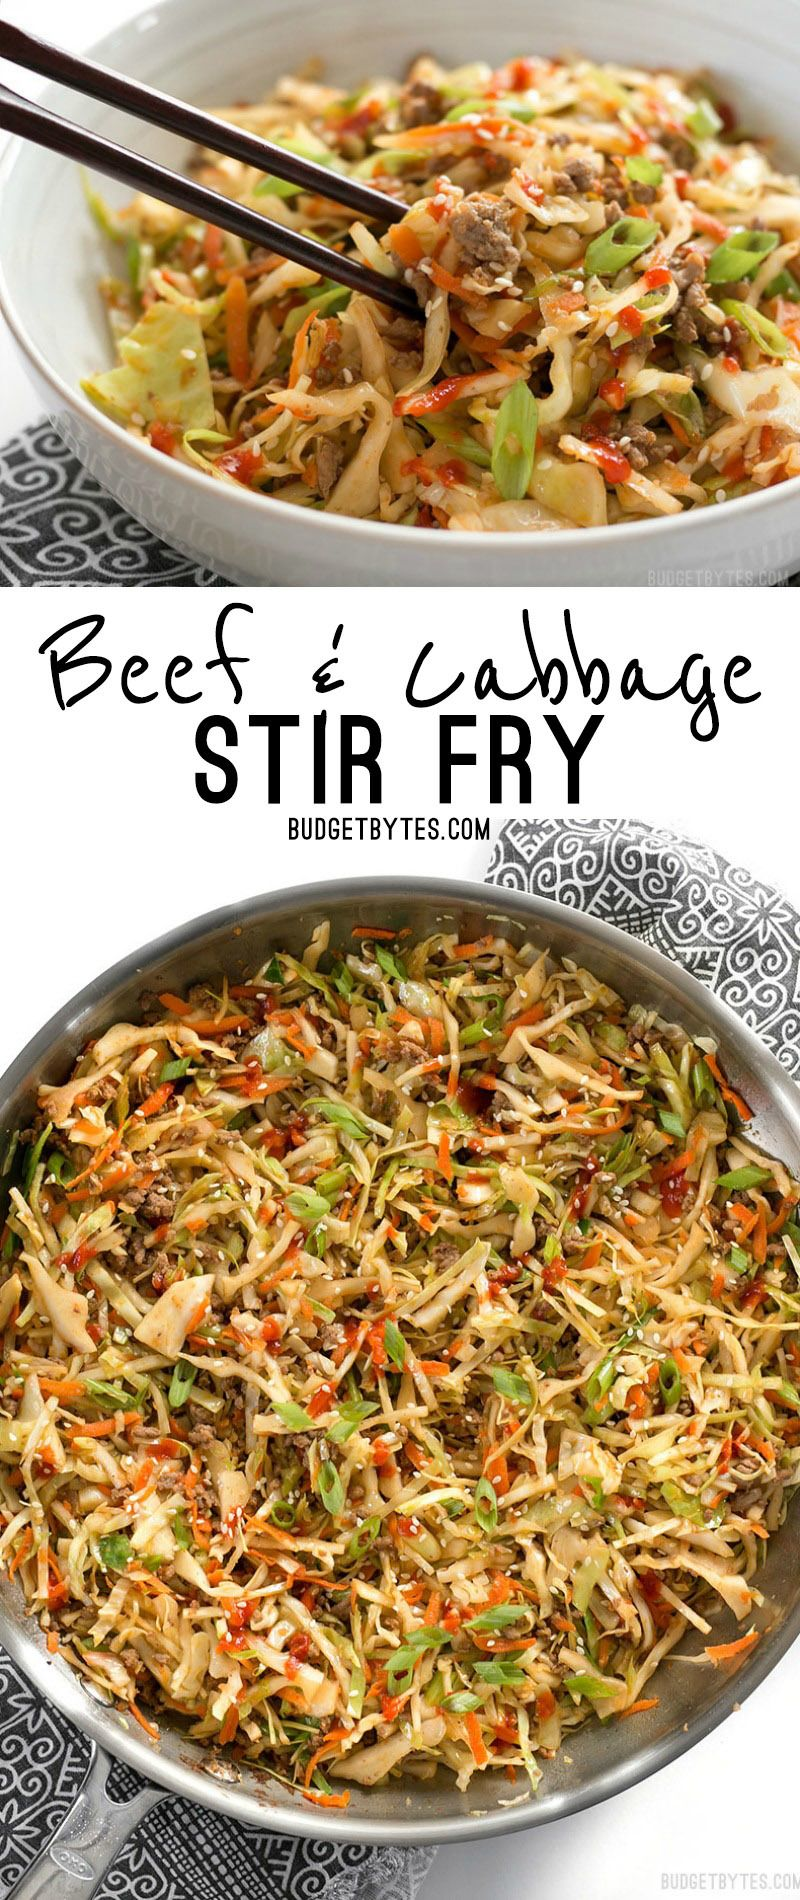 Beef And Cabbage Stir Fry With Video Budget Bytes Recipe Recipes Healthy Diet Recipes